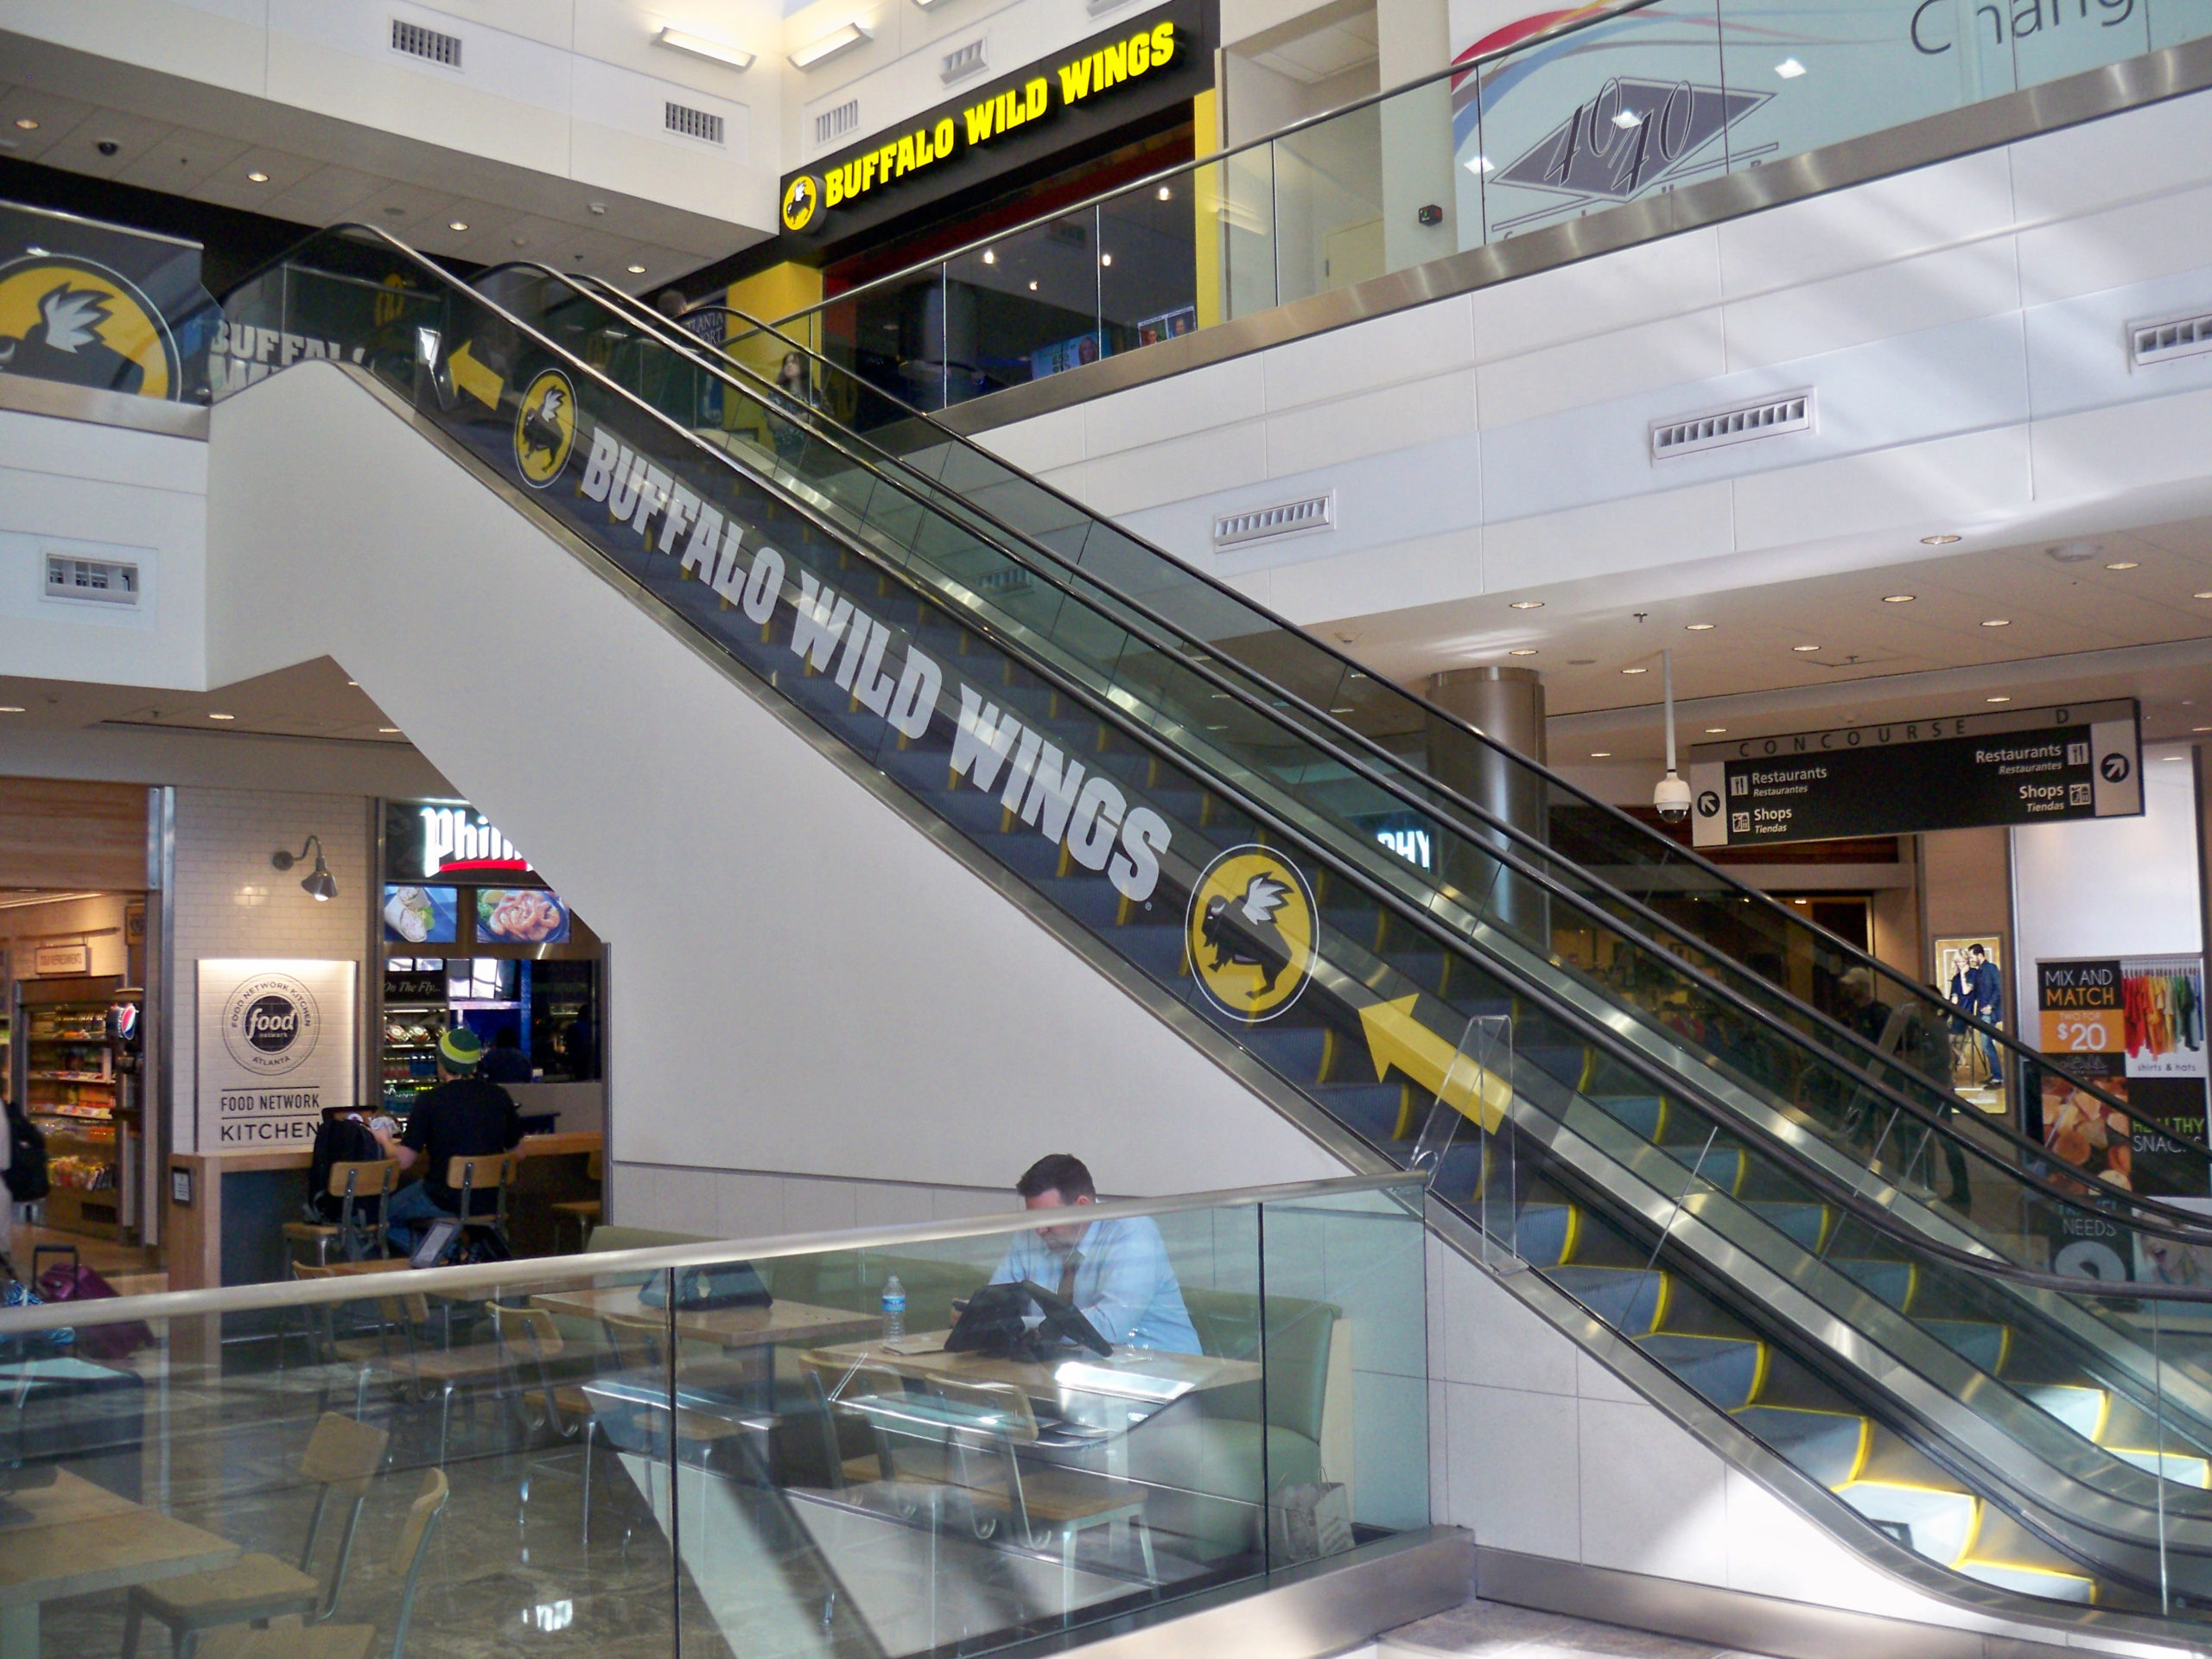 buffalo-wild-wings-escalator-contra-vision-window-advertising